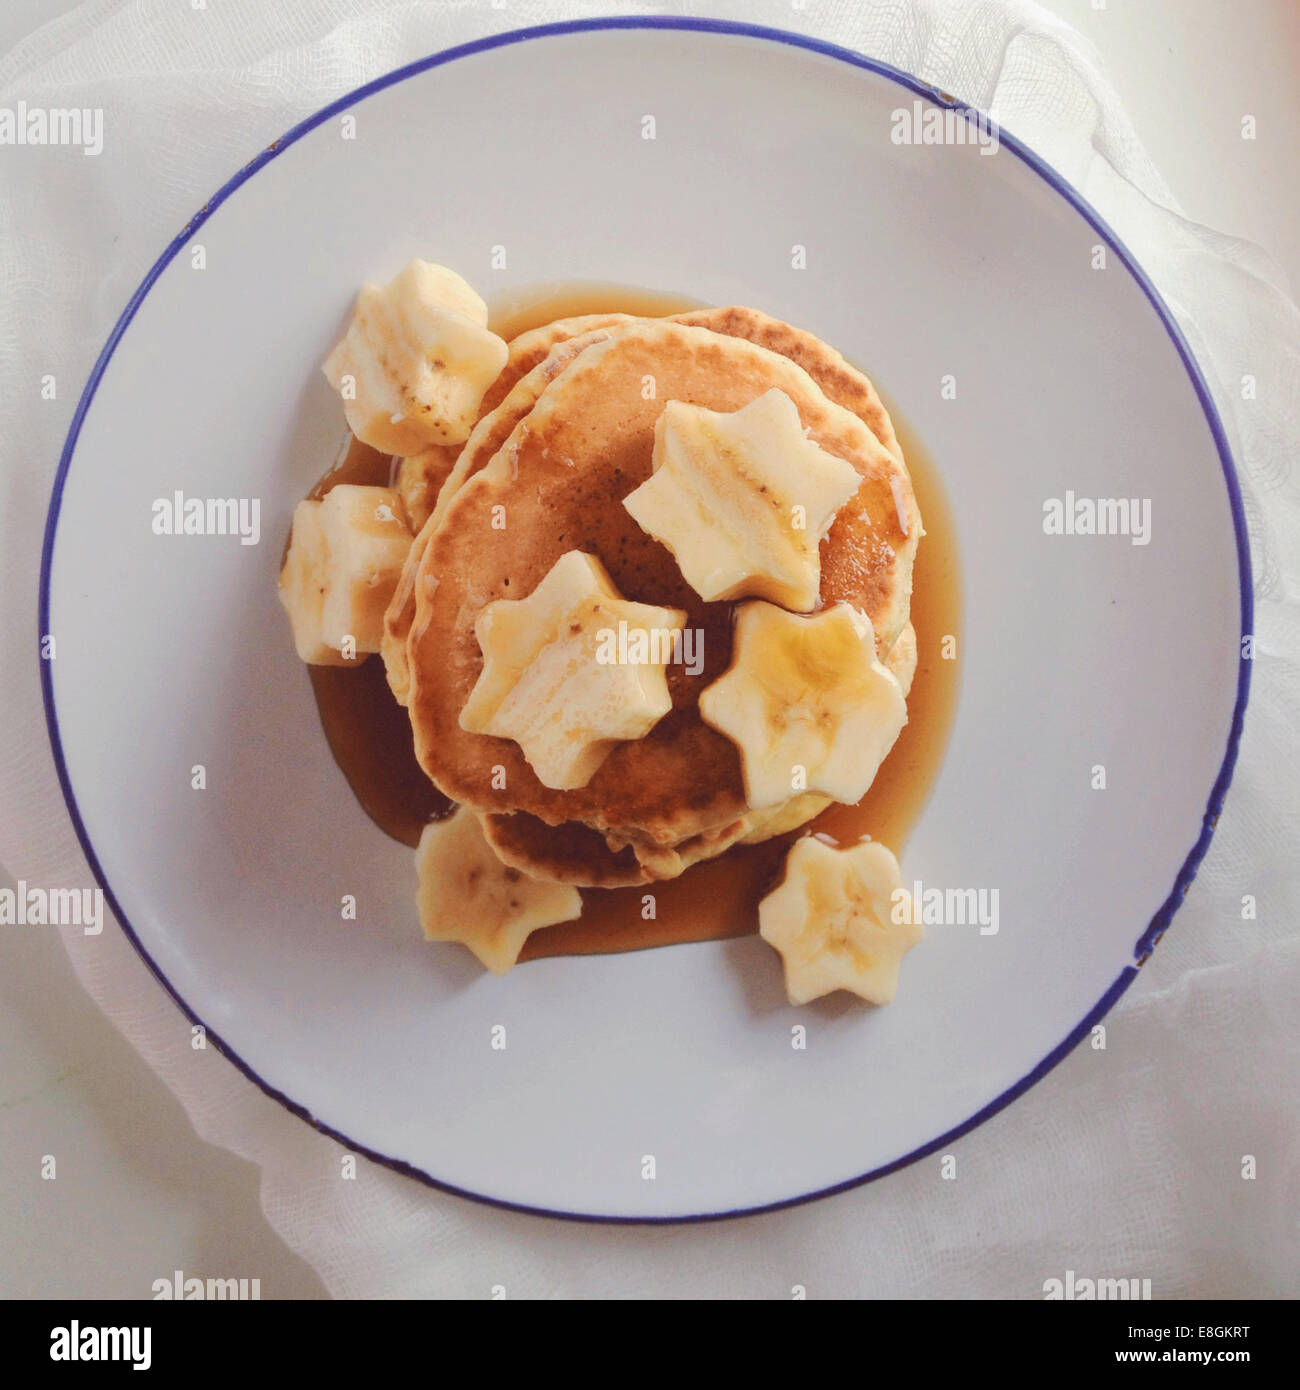 Stack of pancakes with banana and maple syrup - Stock Image